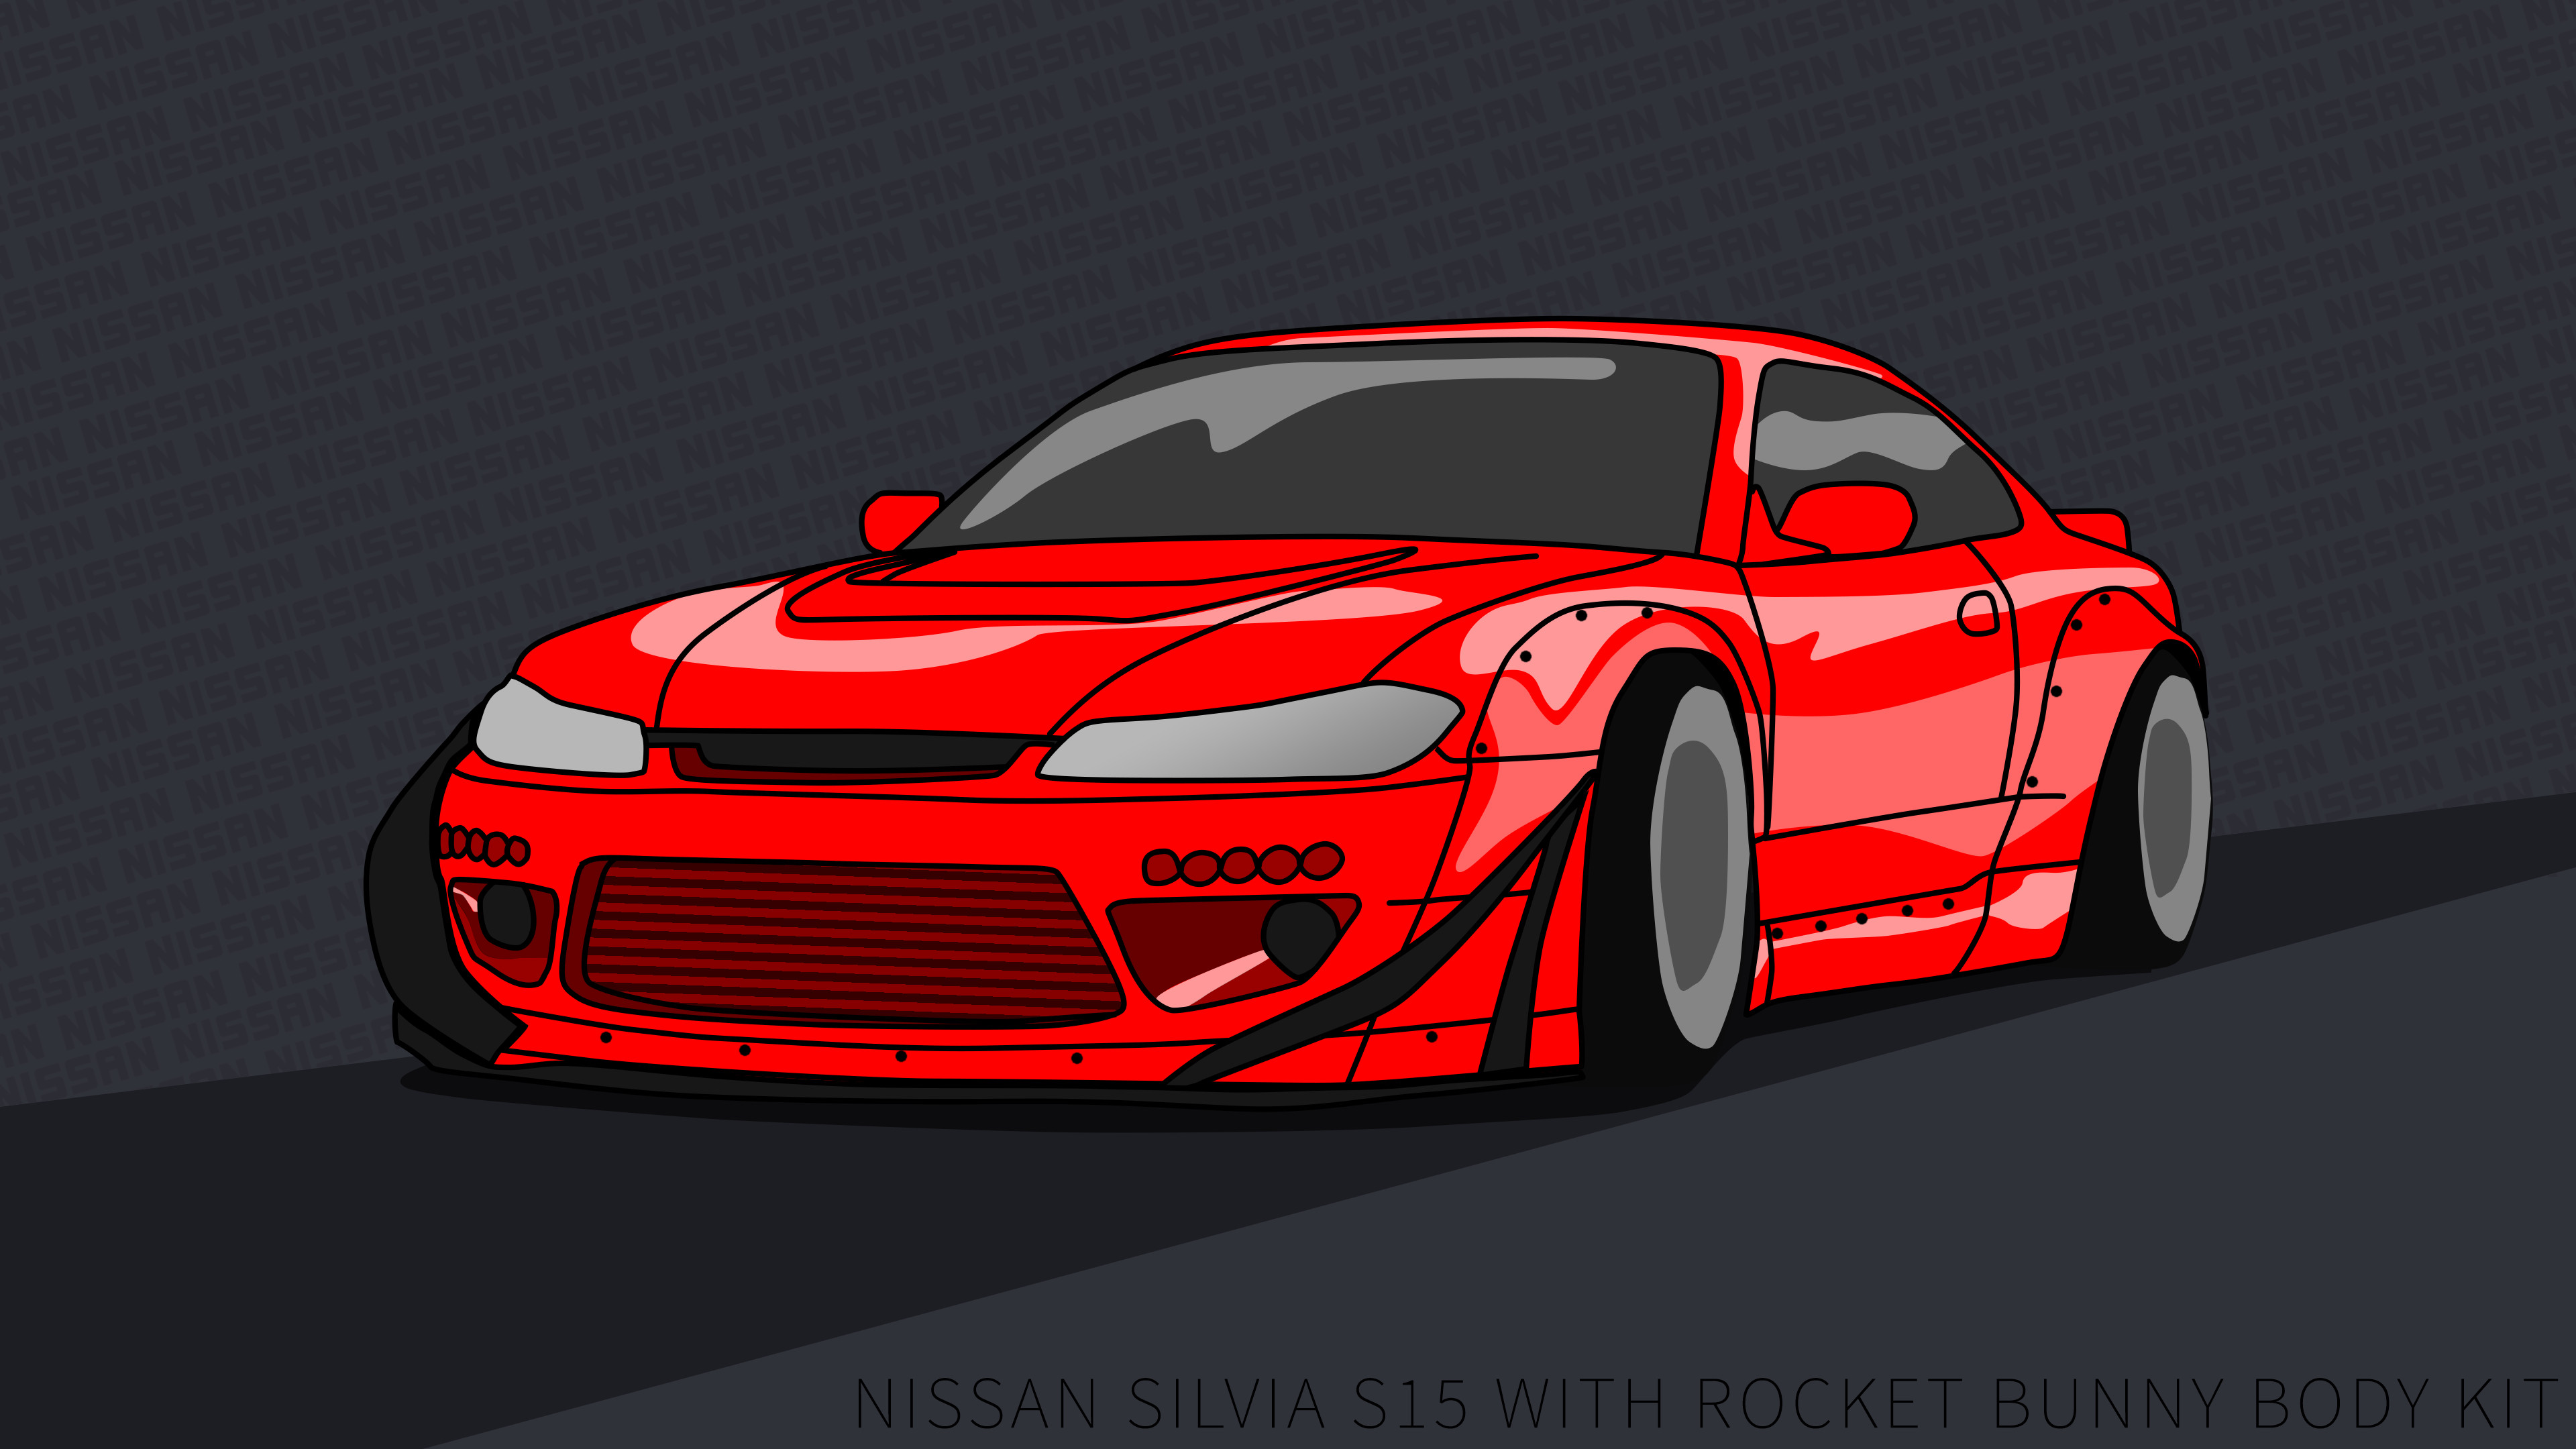 3840x2160 ... Nissan Silvia S15 wallpaper 4k rocket bunny Red by ItsBarney01